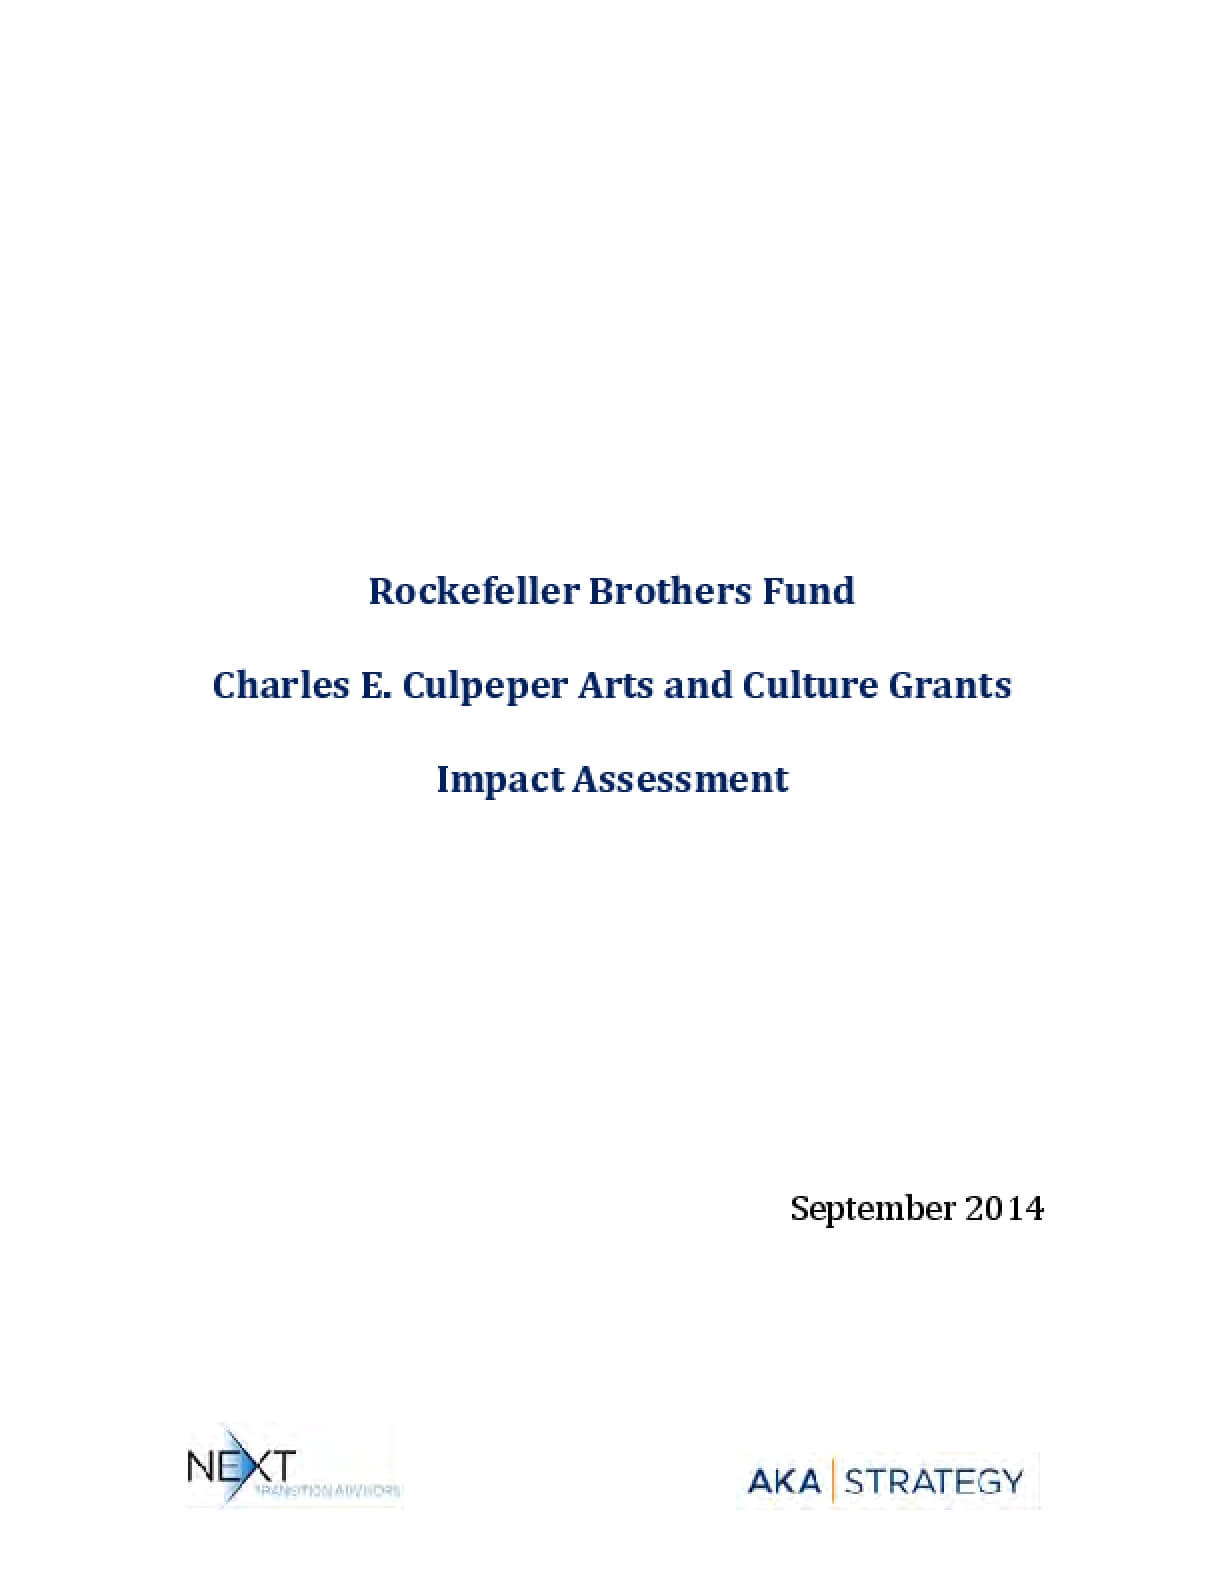 Rockefeller Brothers Fund Charles E. Culpeper Arts and Culture Grants Impact Assessment